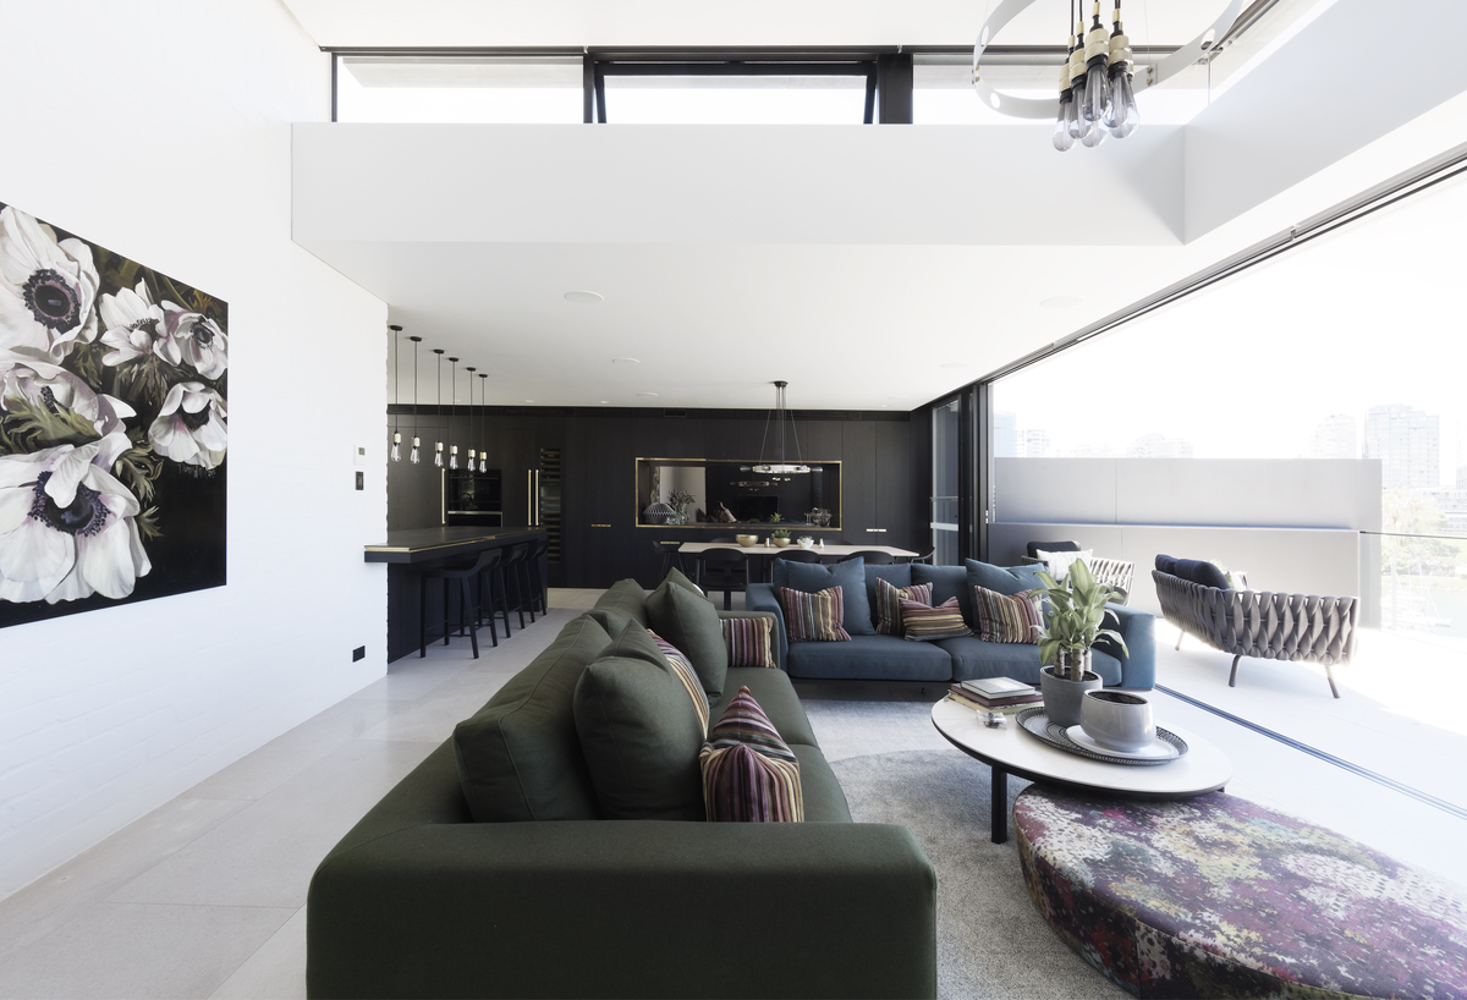 twin-houses-architecture-saville-isaacs-the-design-emotive-21.jpg